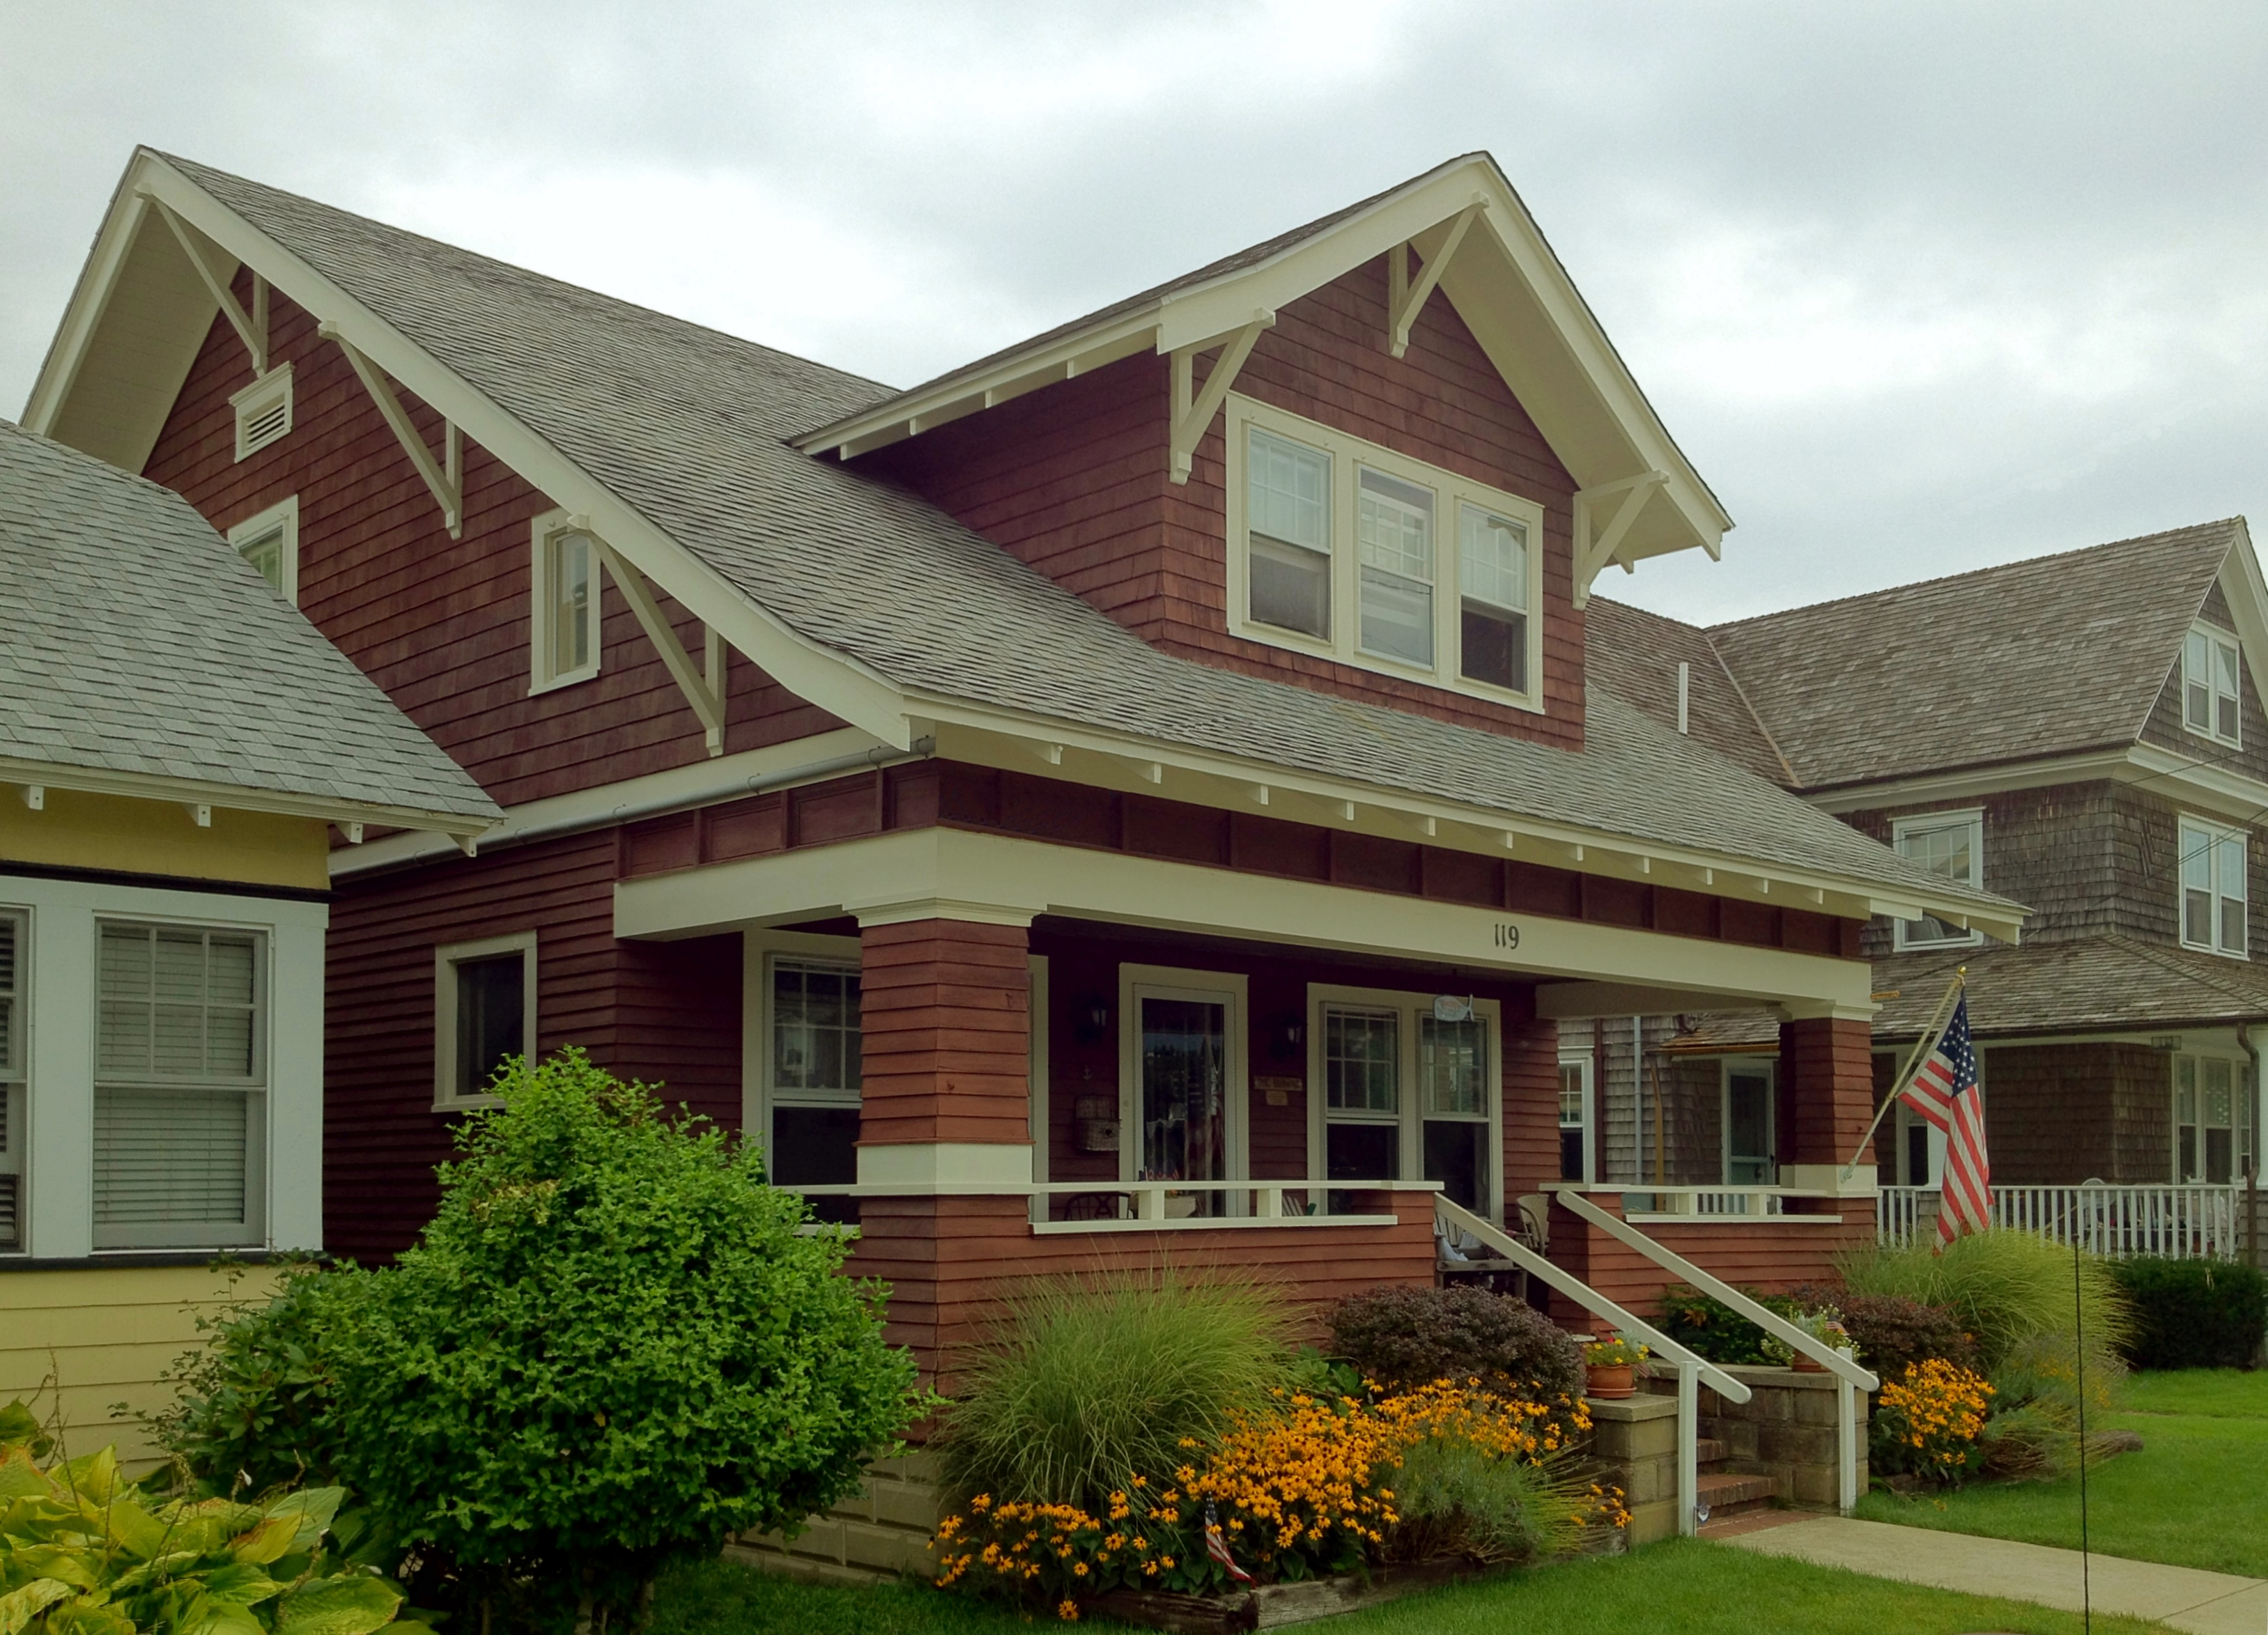 Beach Bungalows And Memories On The Jersey Shore